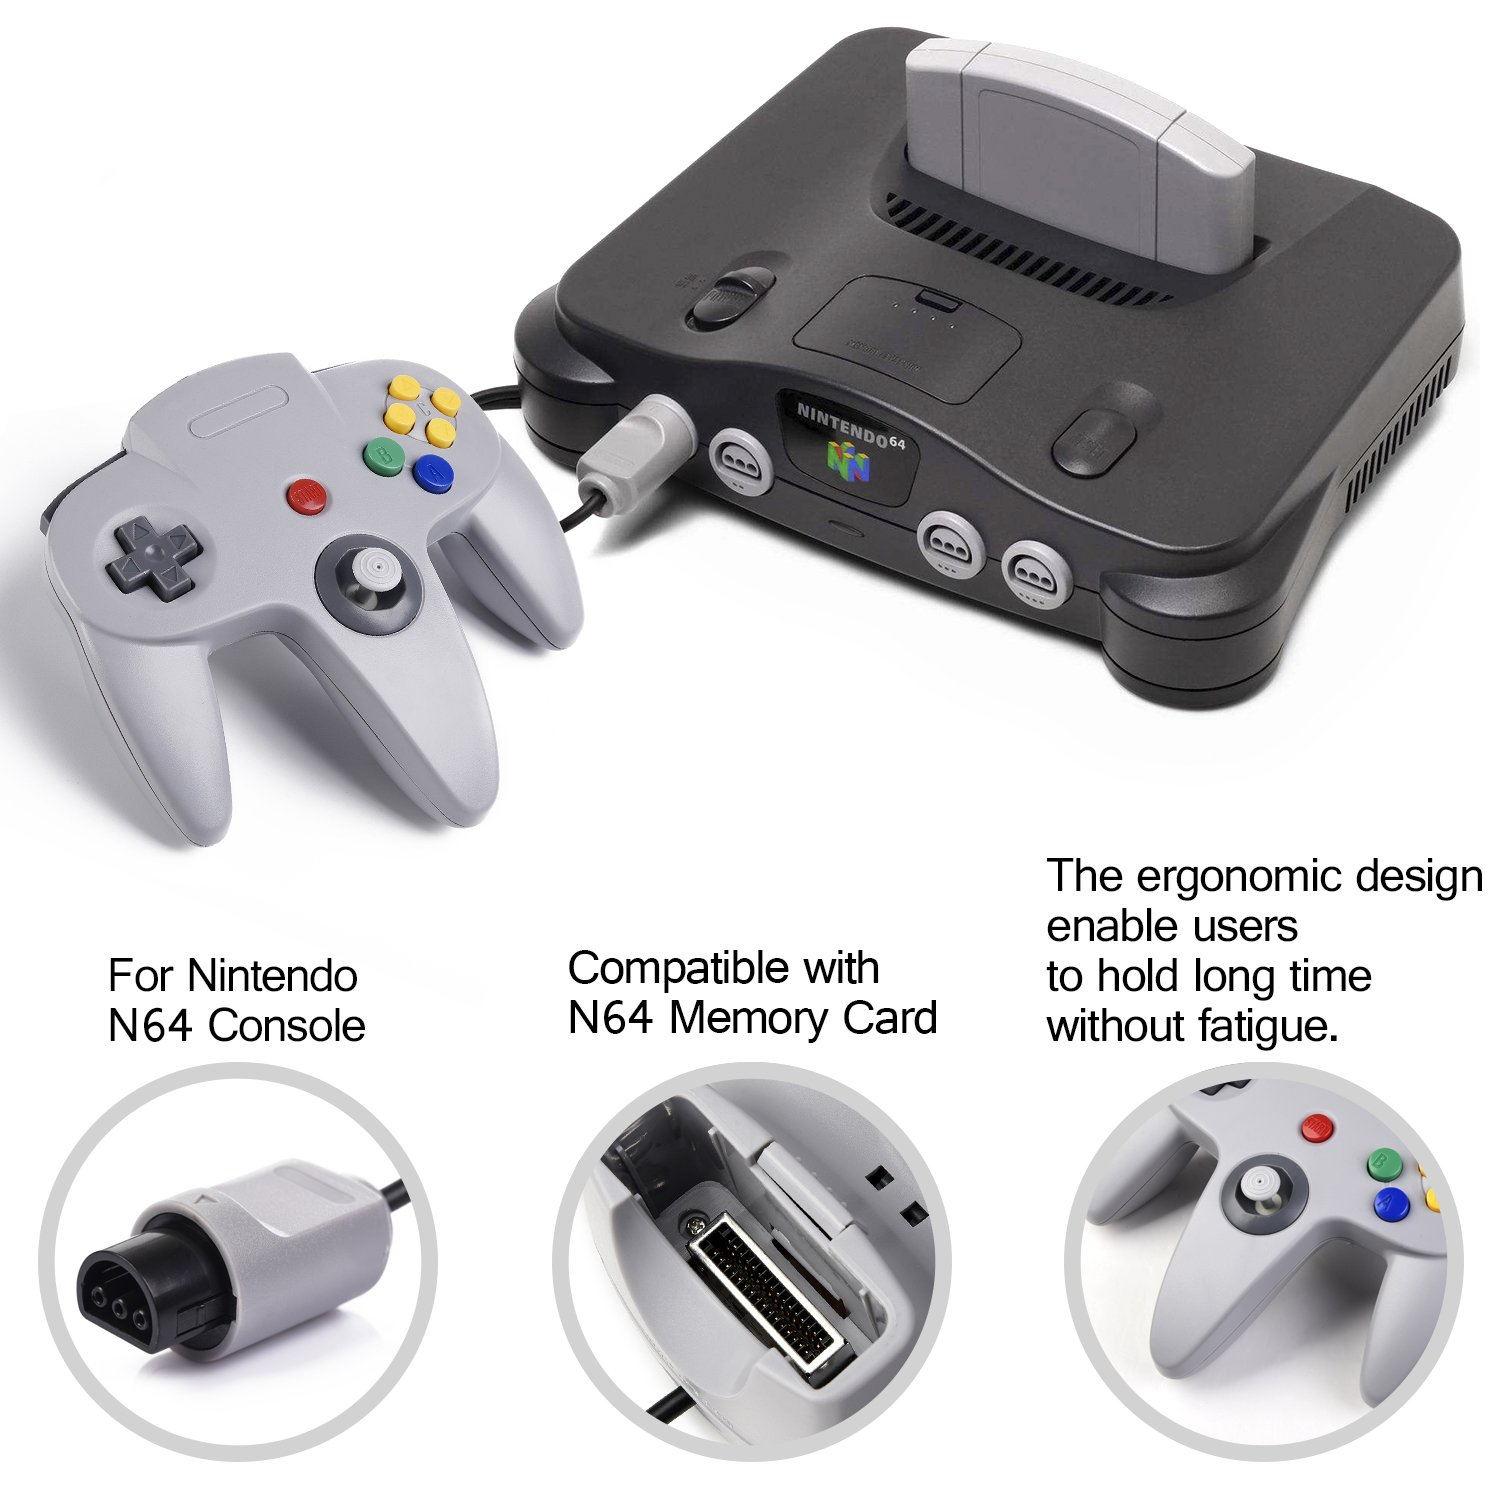 2xClassic 64 N64 Controller,kiwitata Retro Wired Gamepad Controller Joystick for N64 Console Nintendo 64 Video Games System Black+Gray by kiwitatá (Image #7)